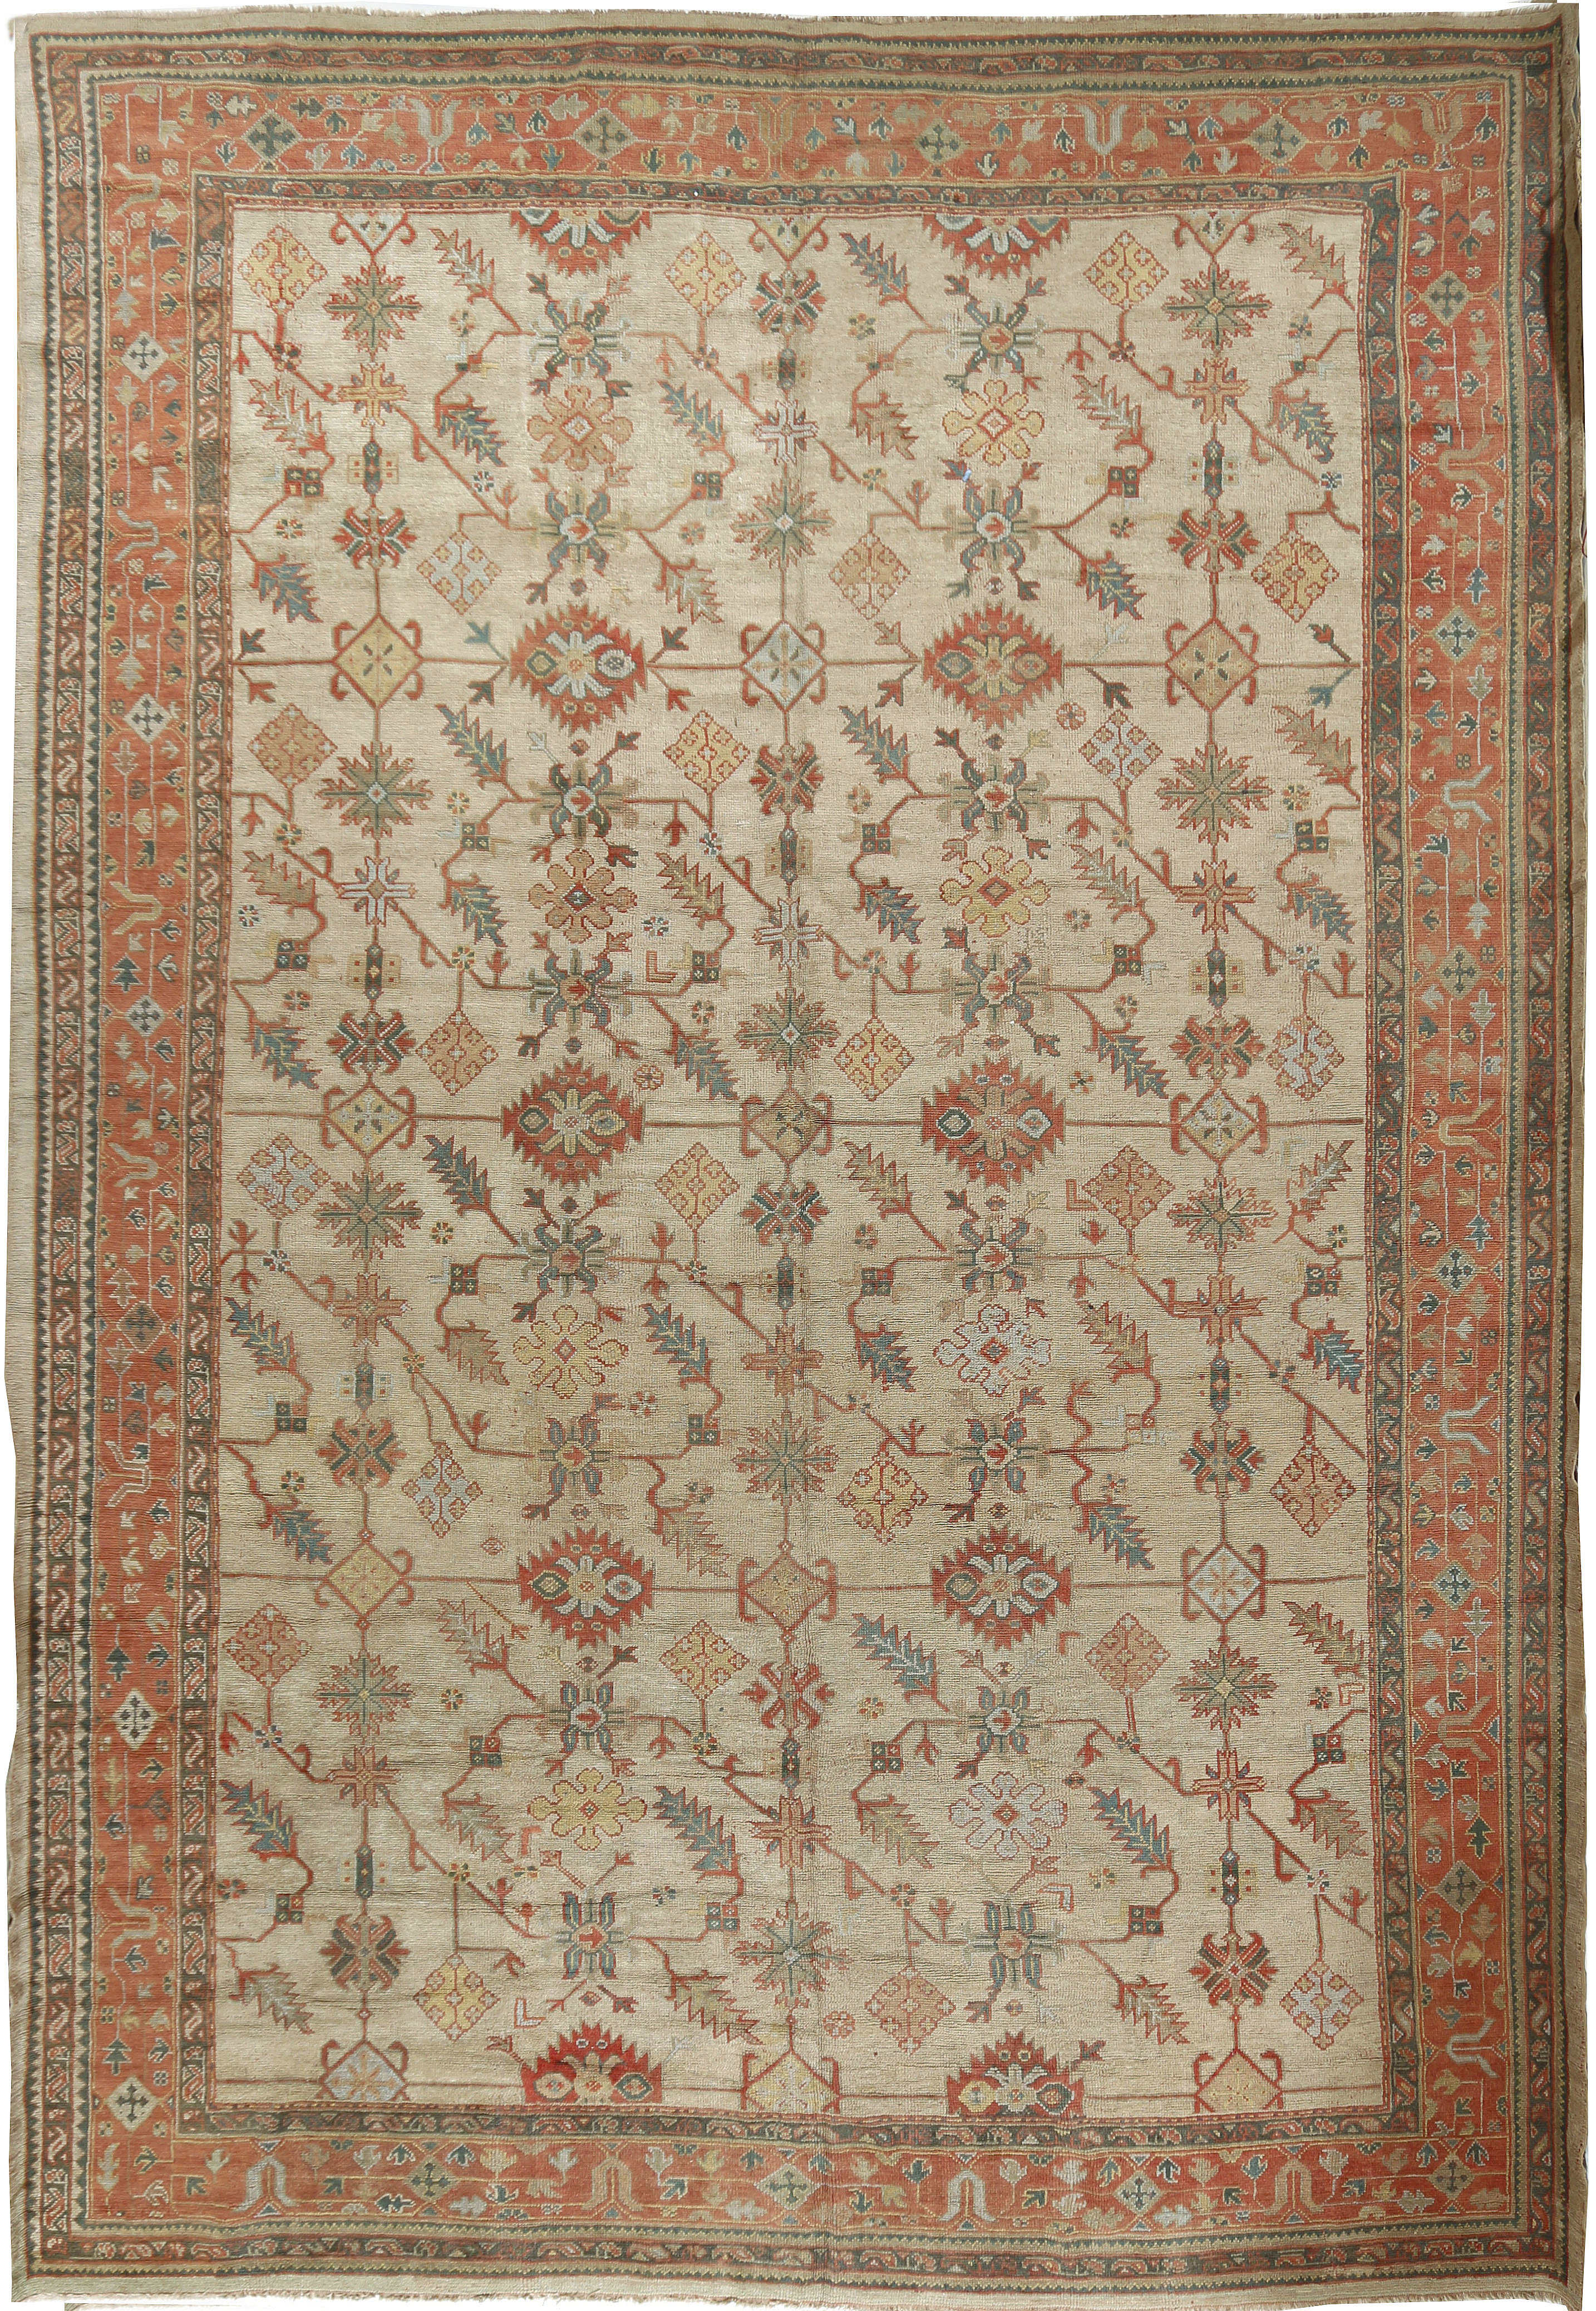 Oversize Antique Turkish Oushak Rug